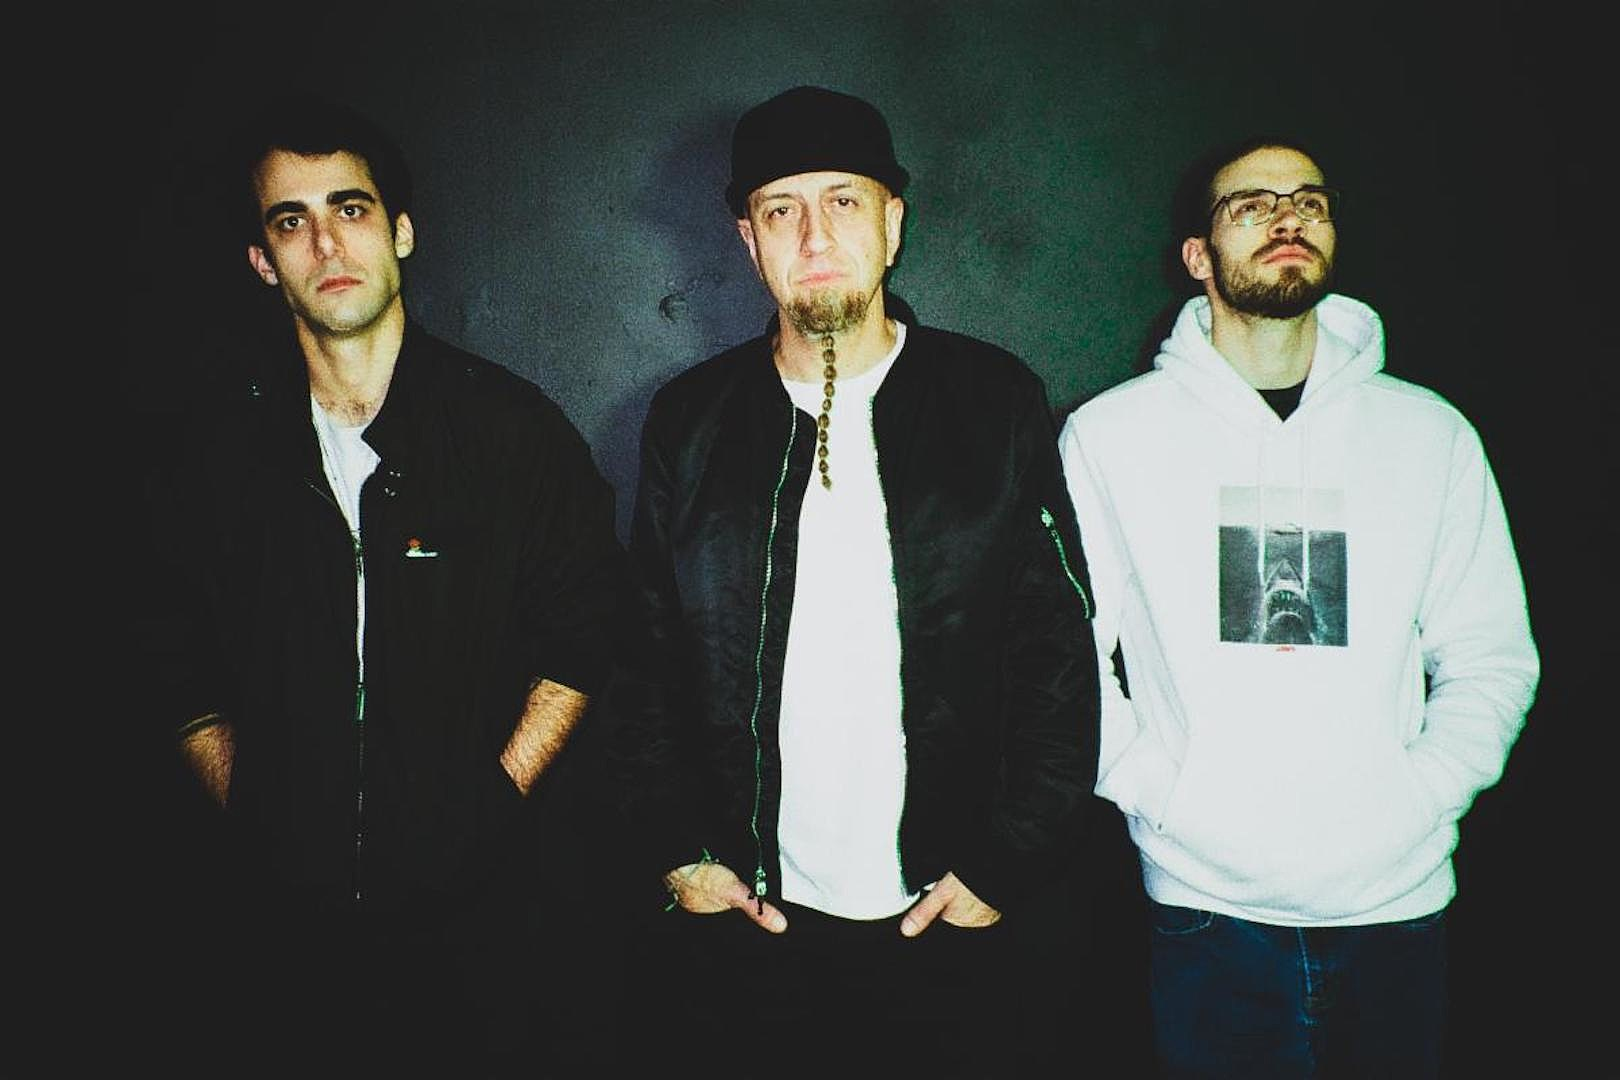 System of a Down's Shavo Odadjian Launches New Band, Shares Song